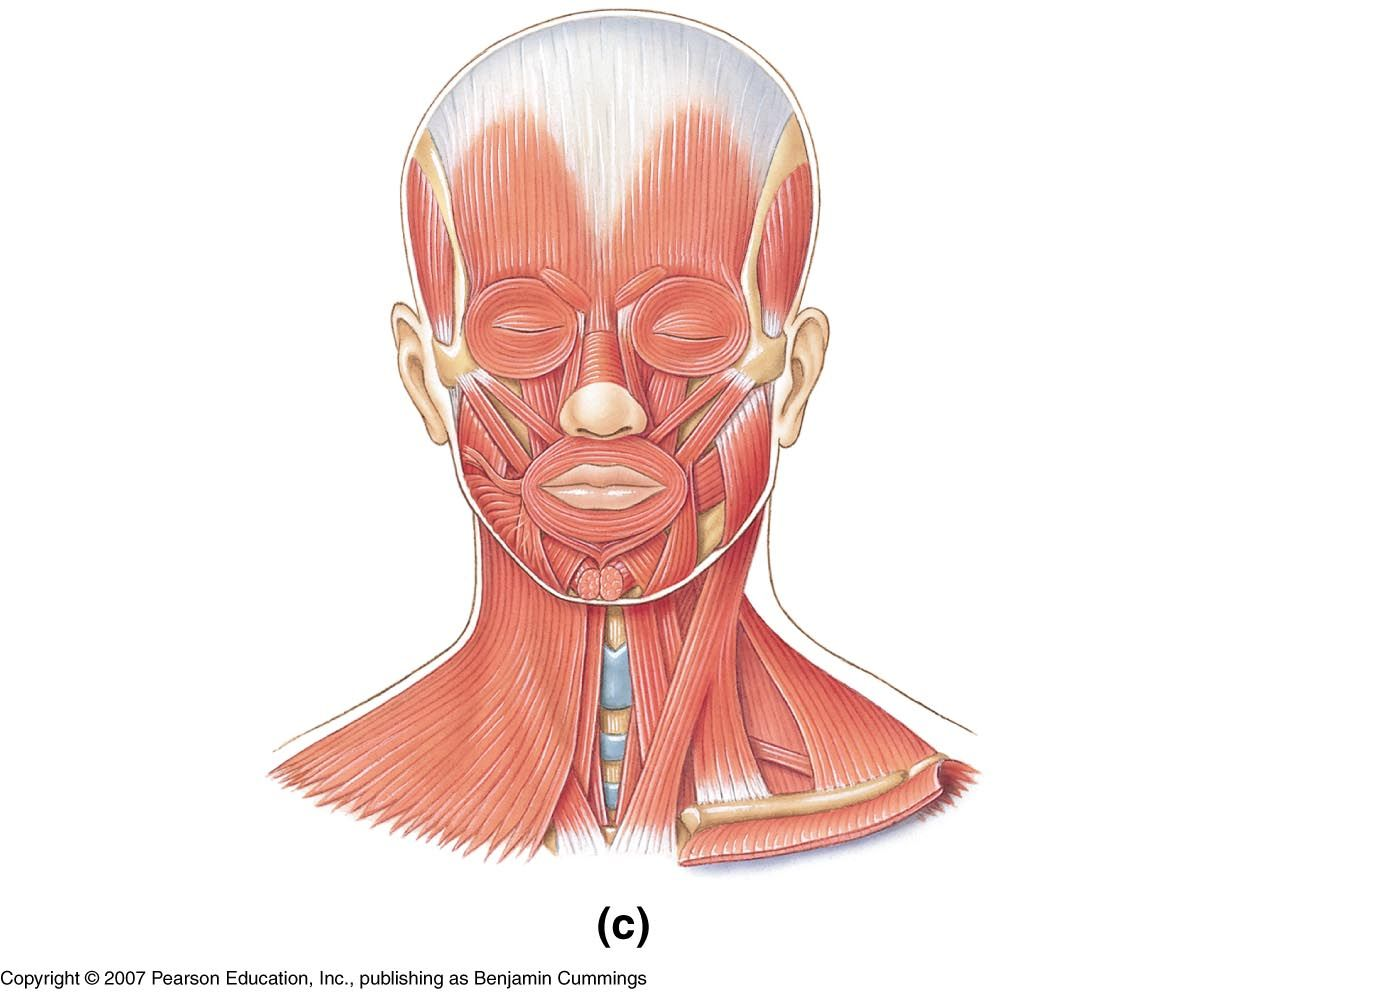 Muscles Of The Face Neck Unlabeled Study Resources Ear